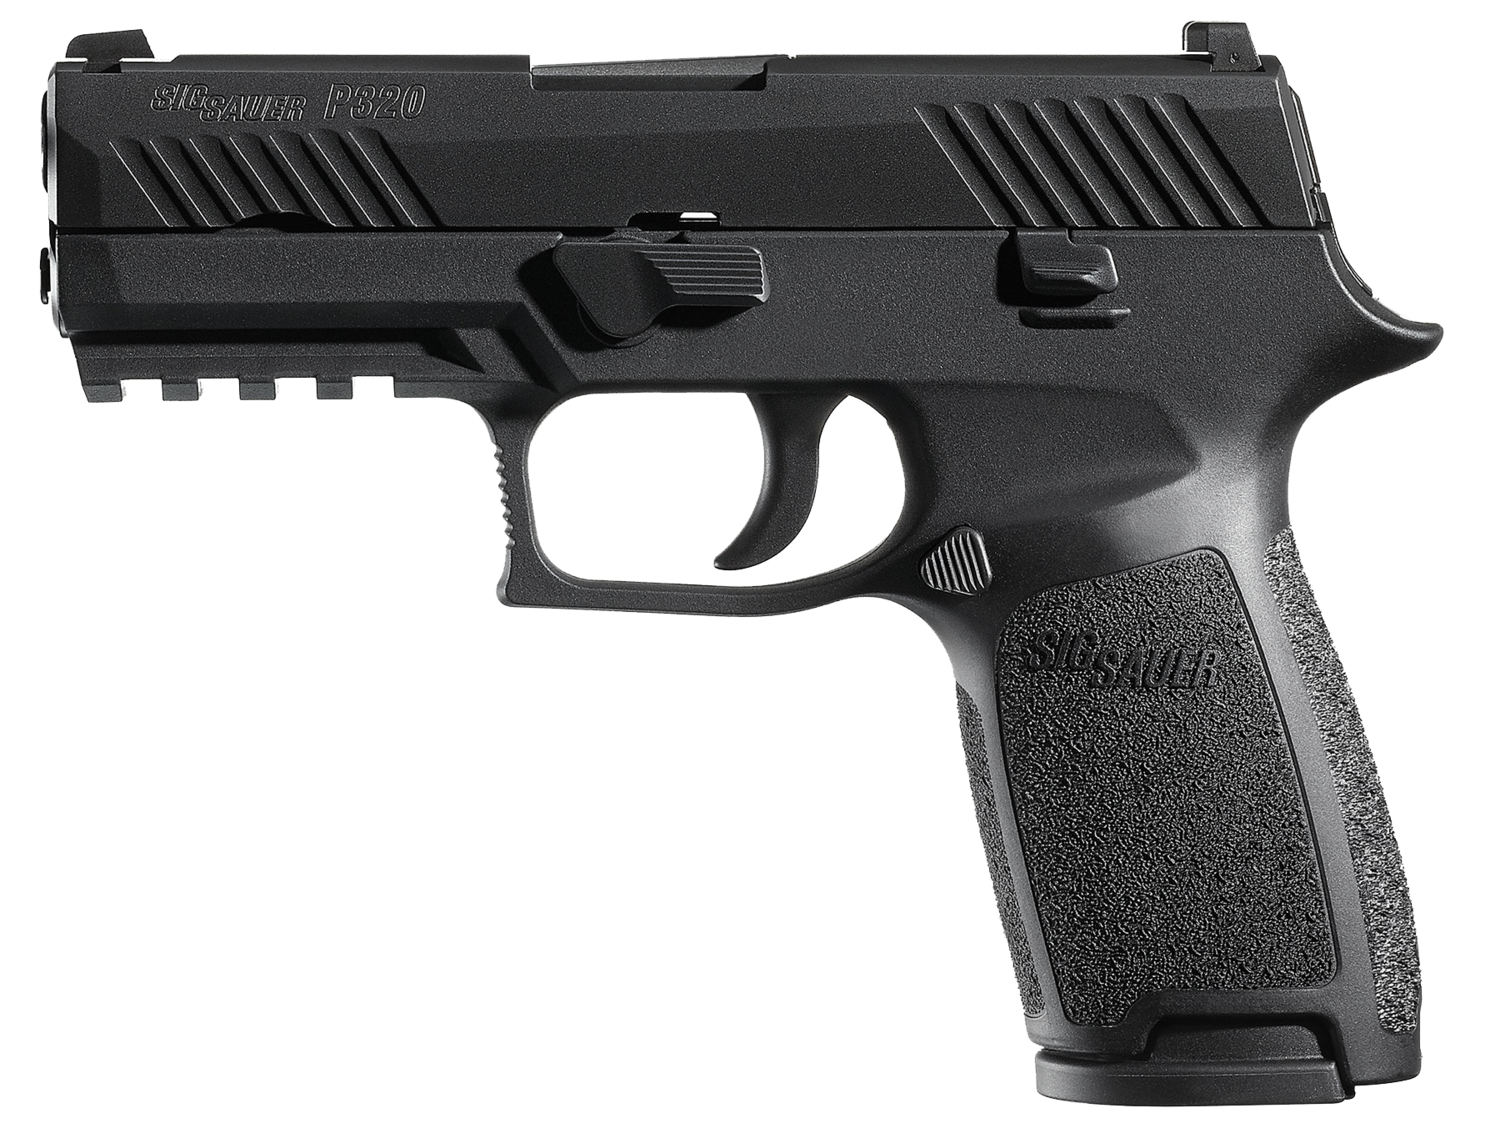 """80% Sig Sauer - P320 Carry Double 357 Sig 3.9"""" 14+1 - 2 Mags - Black Polymer Grip/Frame Grip - Nitron Stainless Steel"""